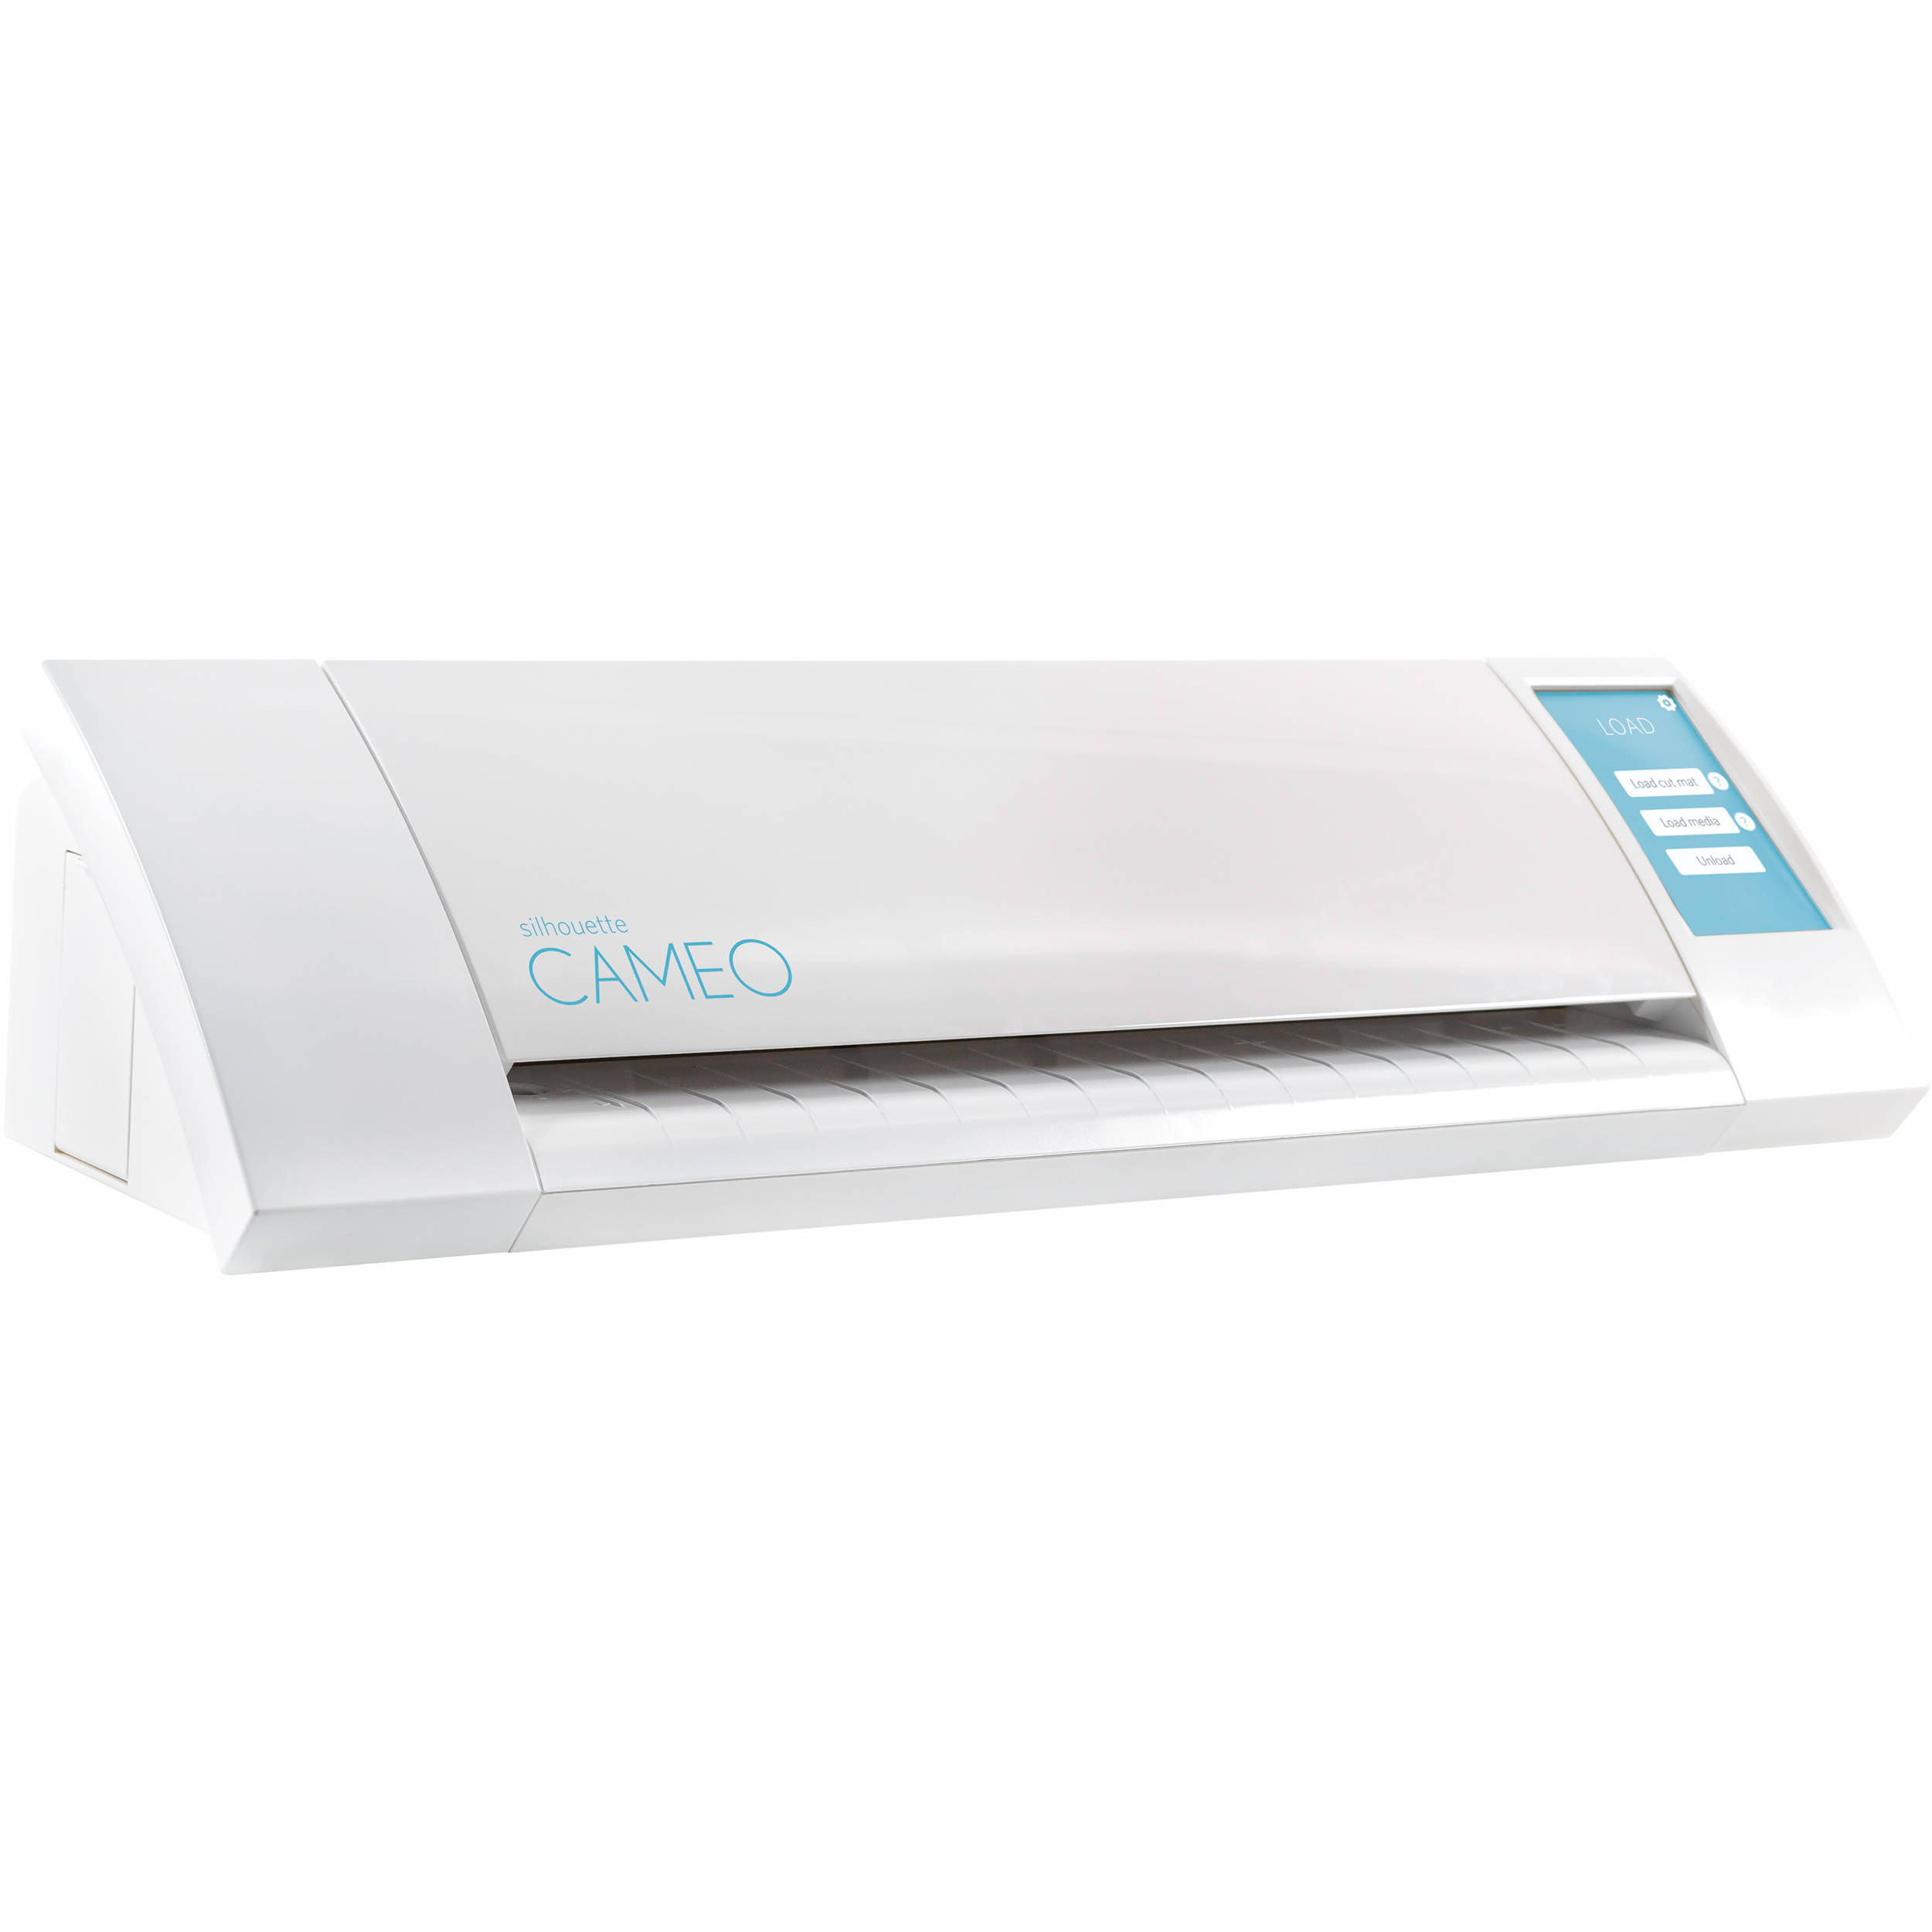 silhouette CAMEO Electronic Cutting Tool SILHOUETTE-CAMEO-2-3T